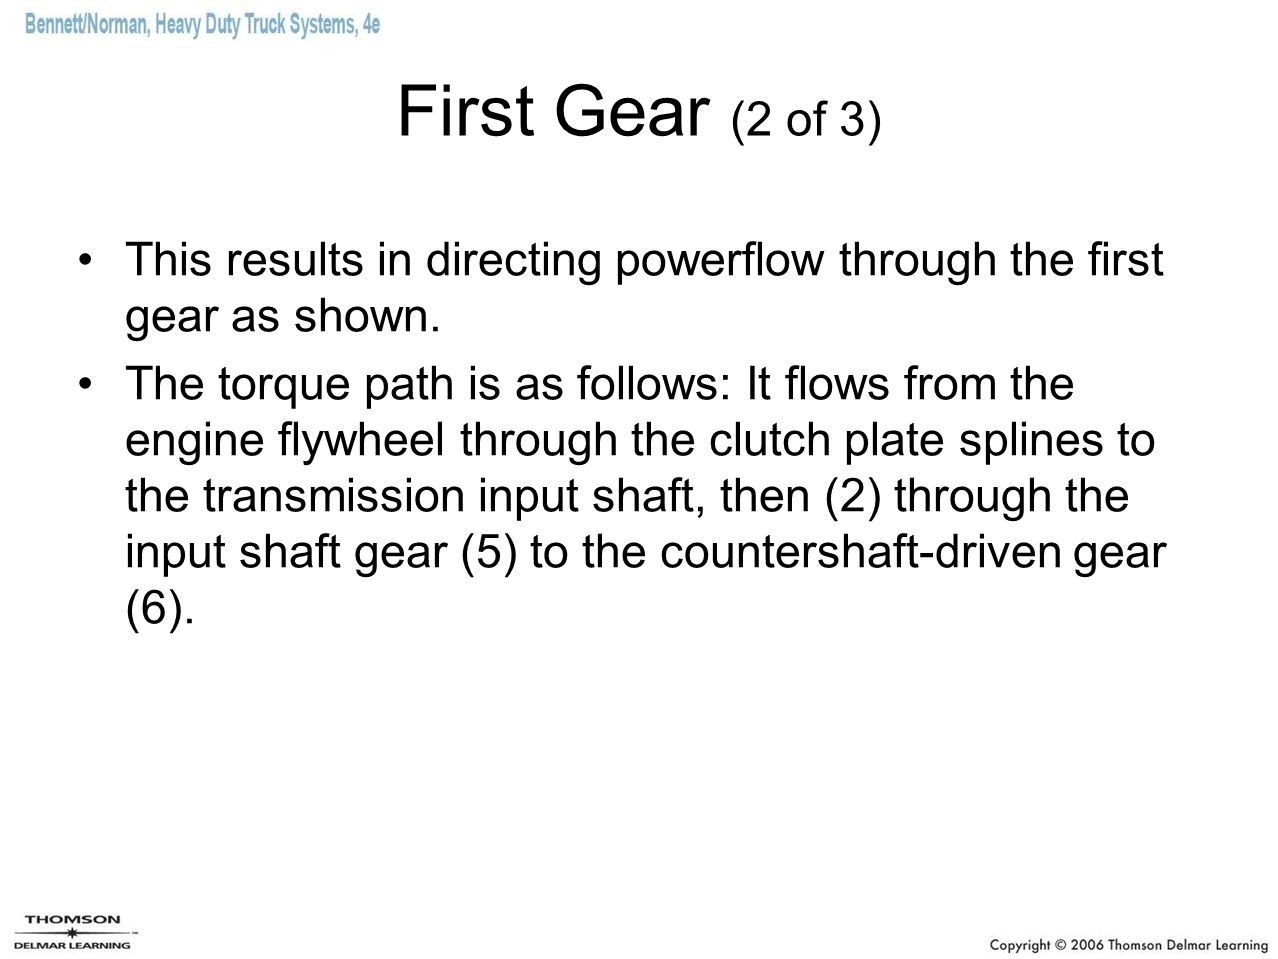 First Gear (2 of 3) This results in directing powerflow through the first gear as shown.